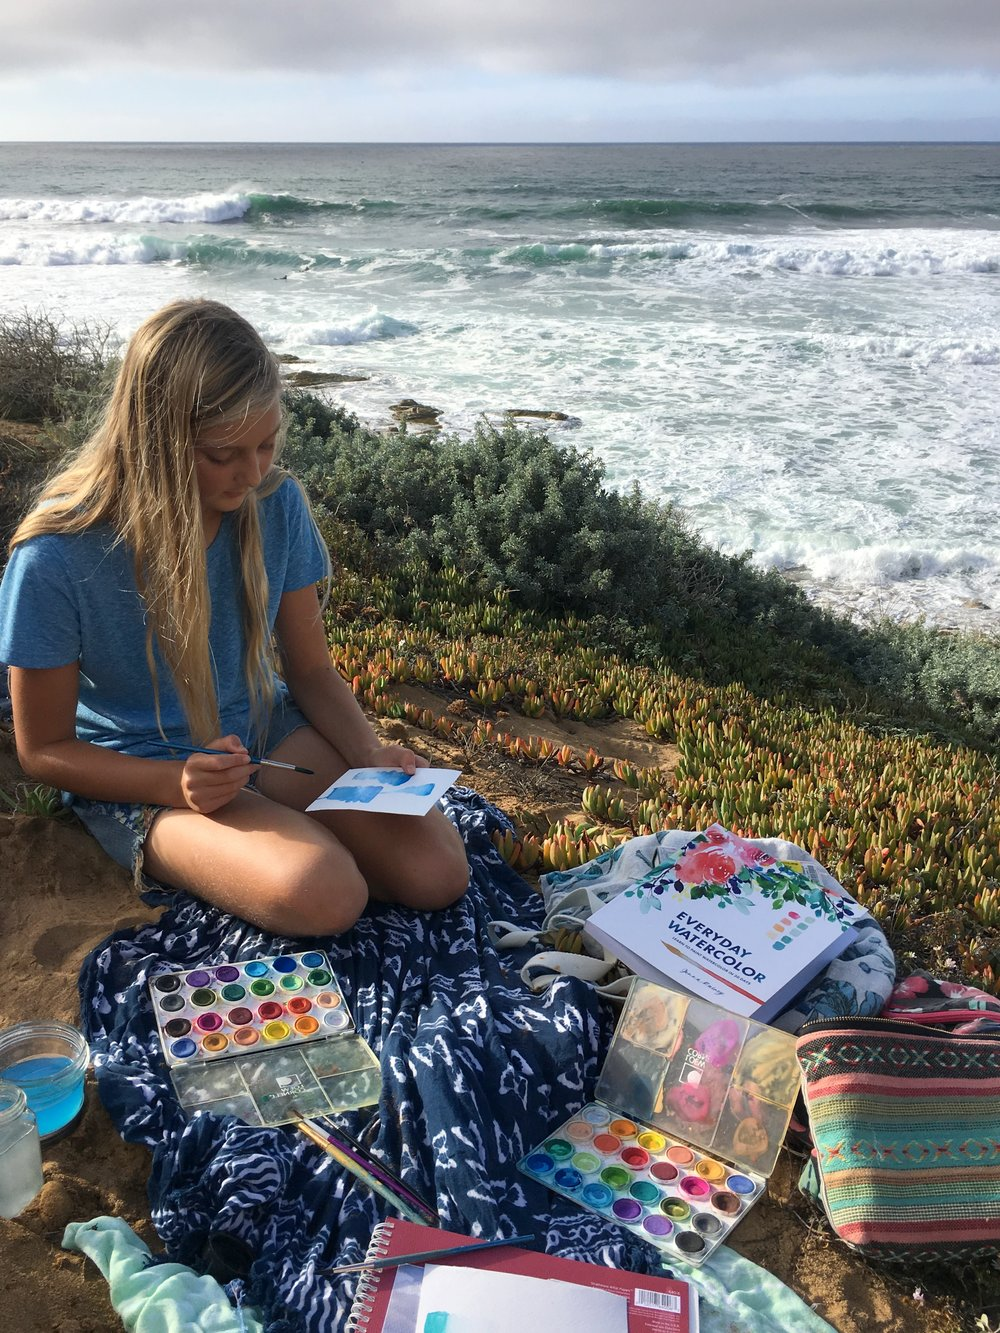 watercoloring at the beach with Everyday Watercolor